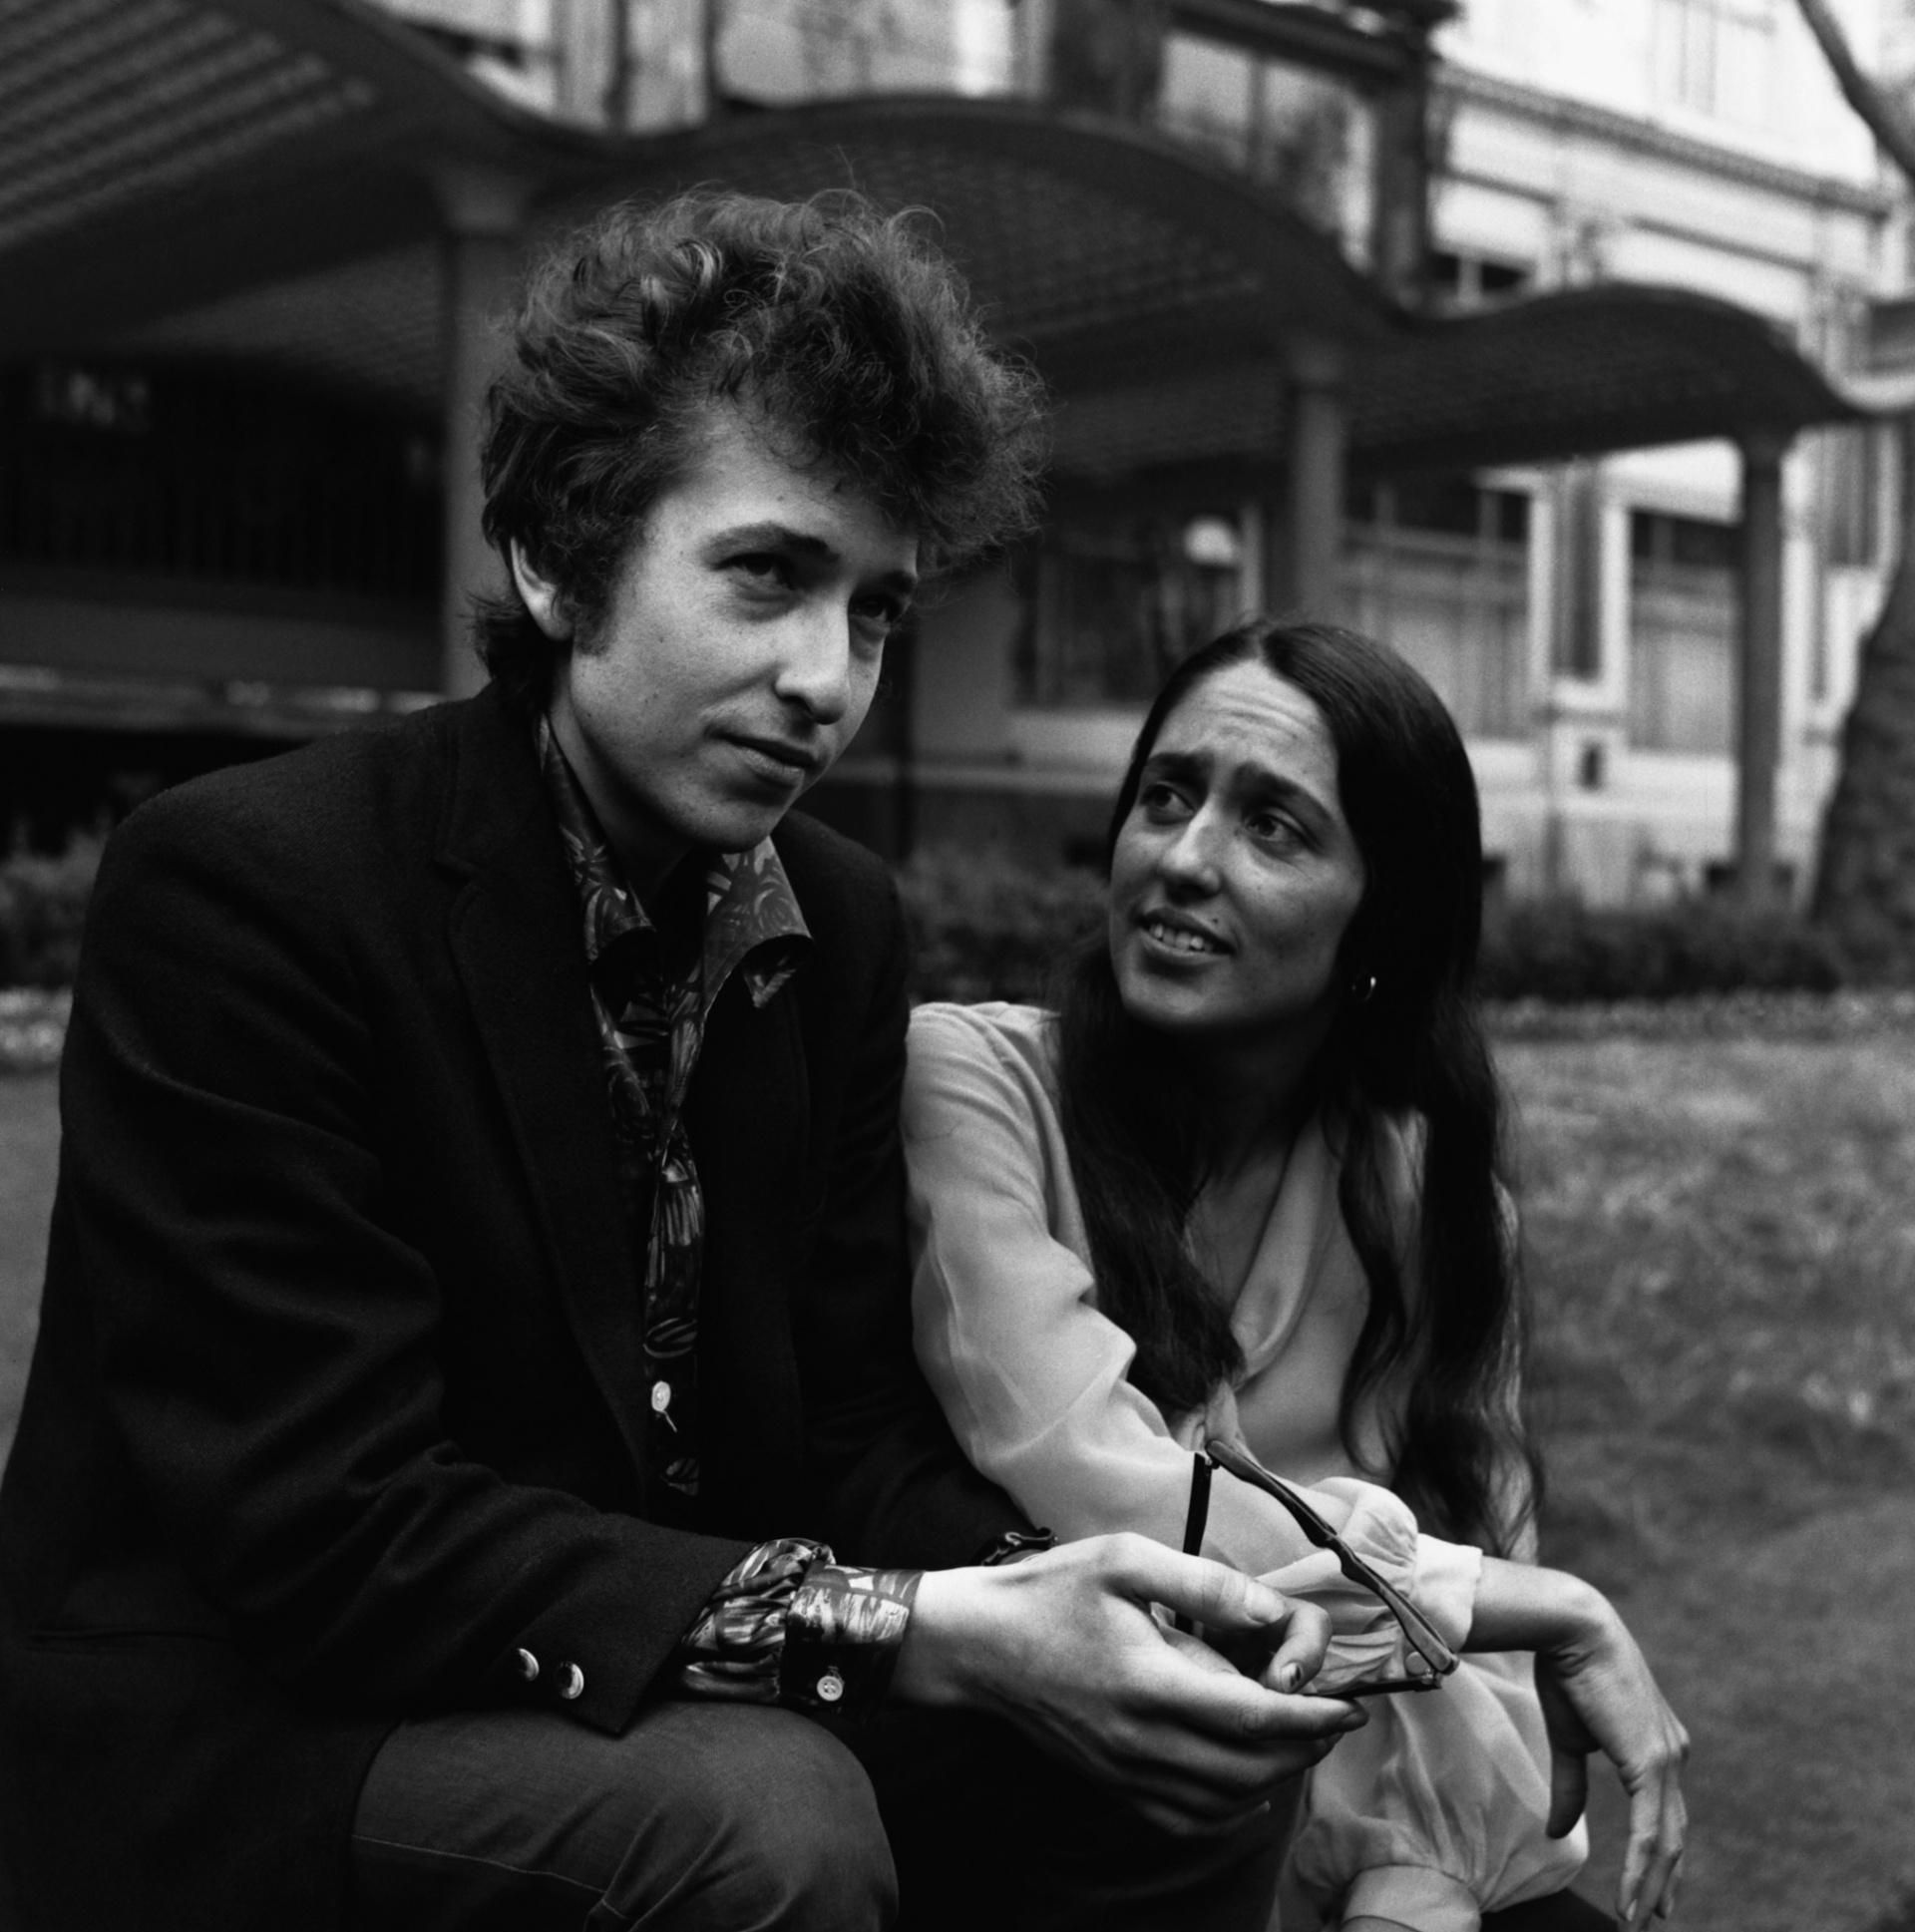 Bob Dylan and Joan Baez photographed in London in 1965 Photograph: Unknown/ Hulton-Deutsch Collection/CORBIS